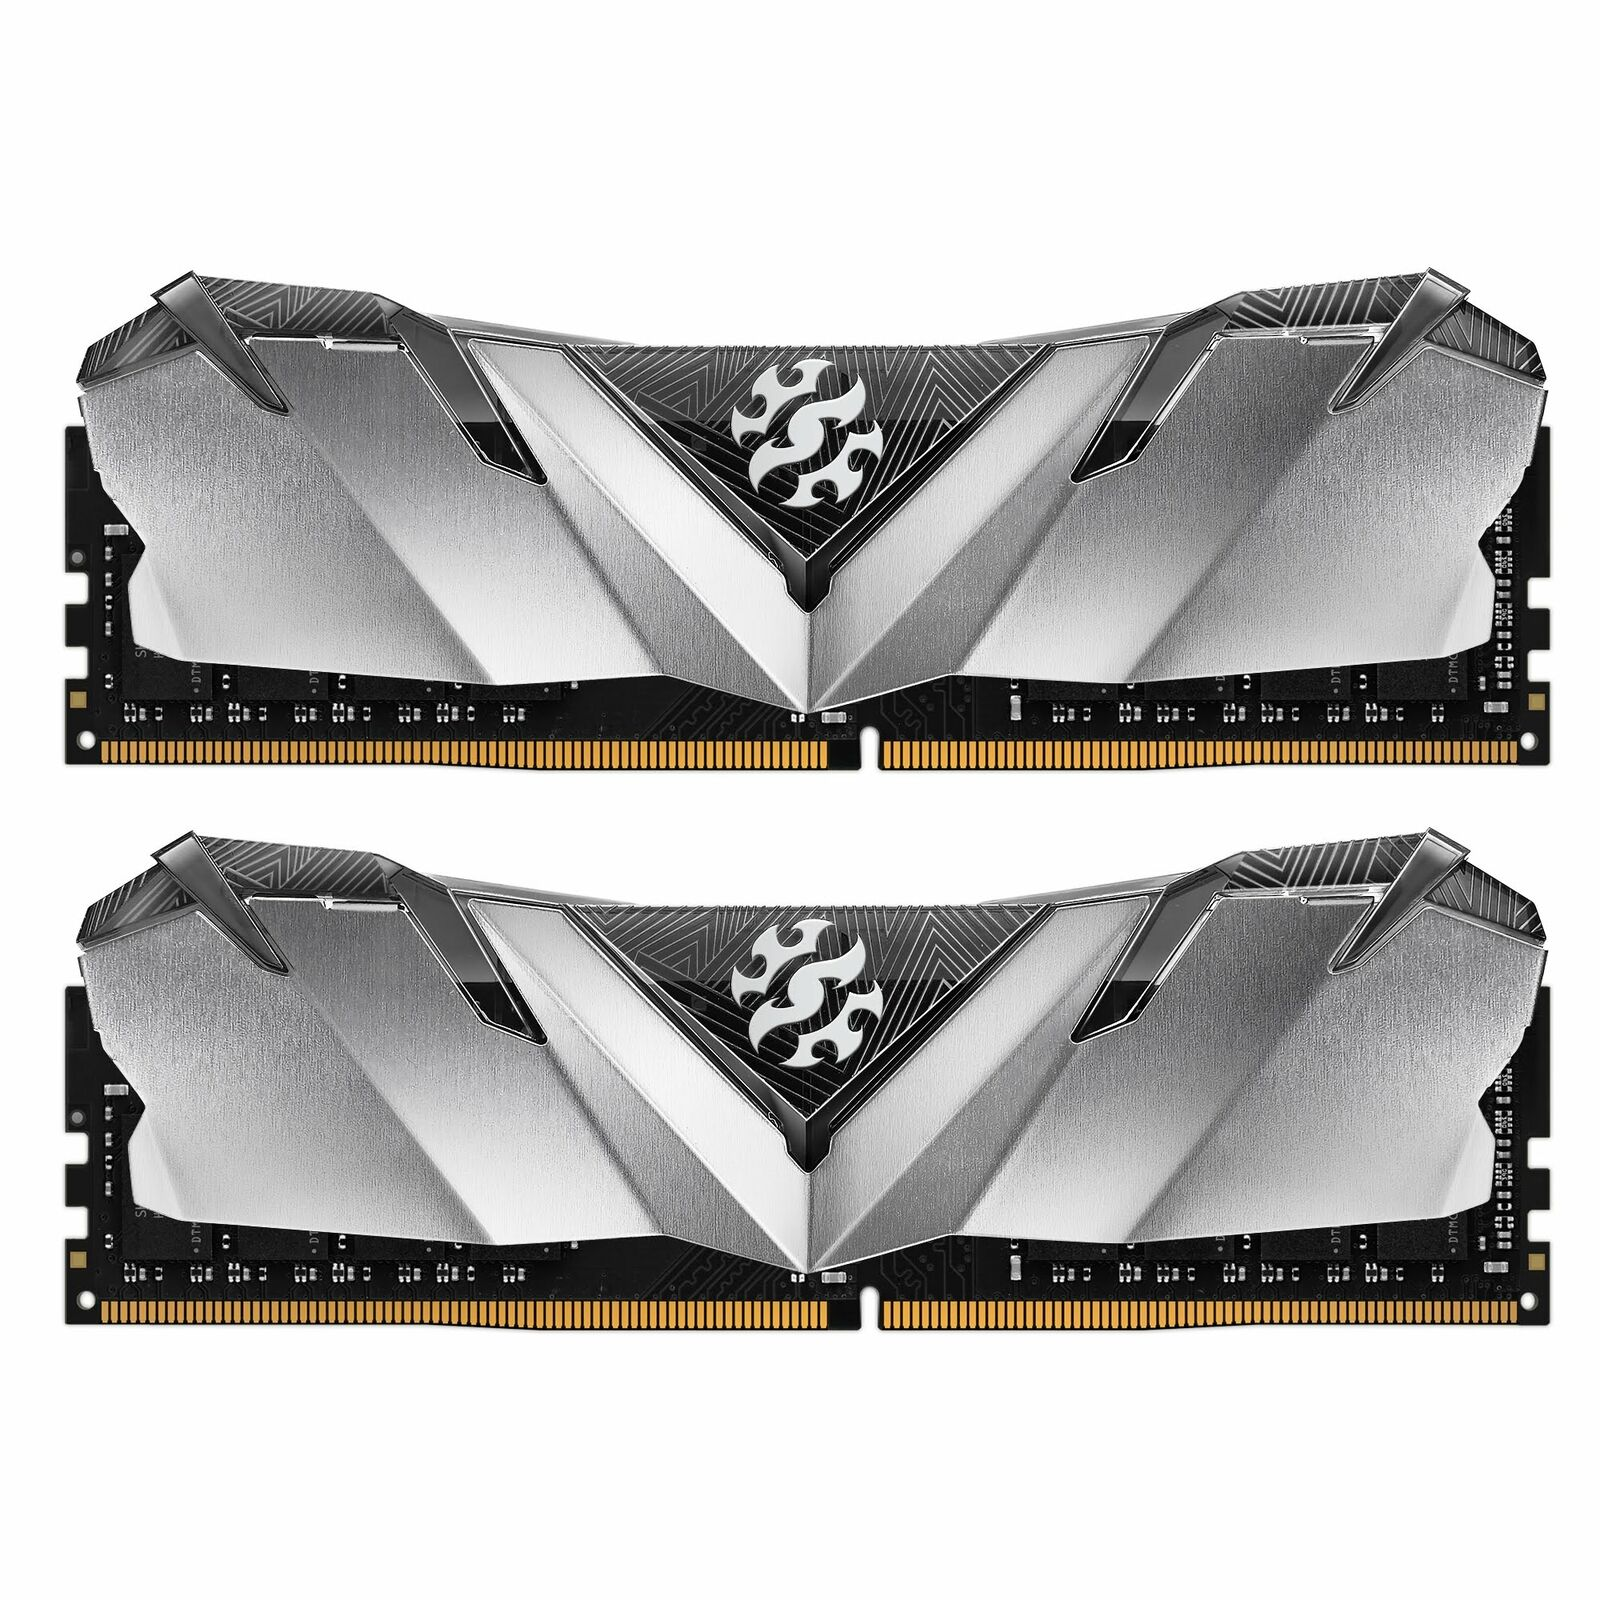 XPG GAMMIX D30 Desktop Memory: 32GB (2x16GB) DDR4 3200MHz CL16 Black. Buy it now for 139.99